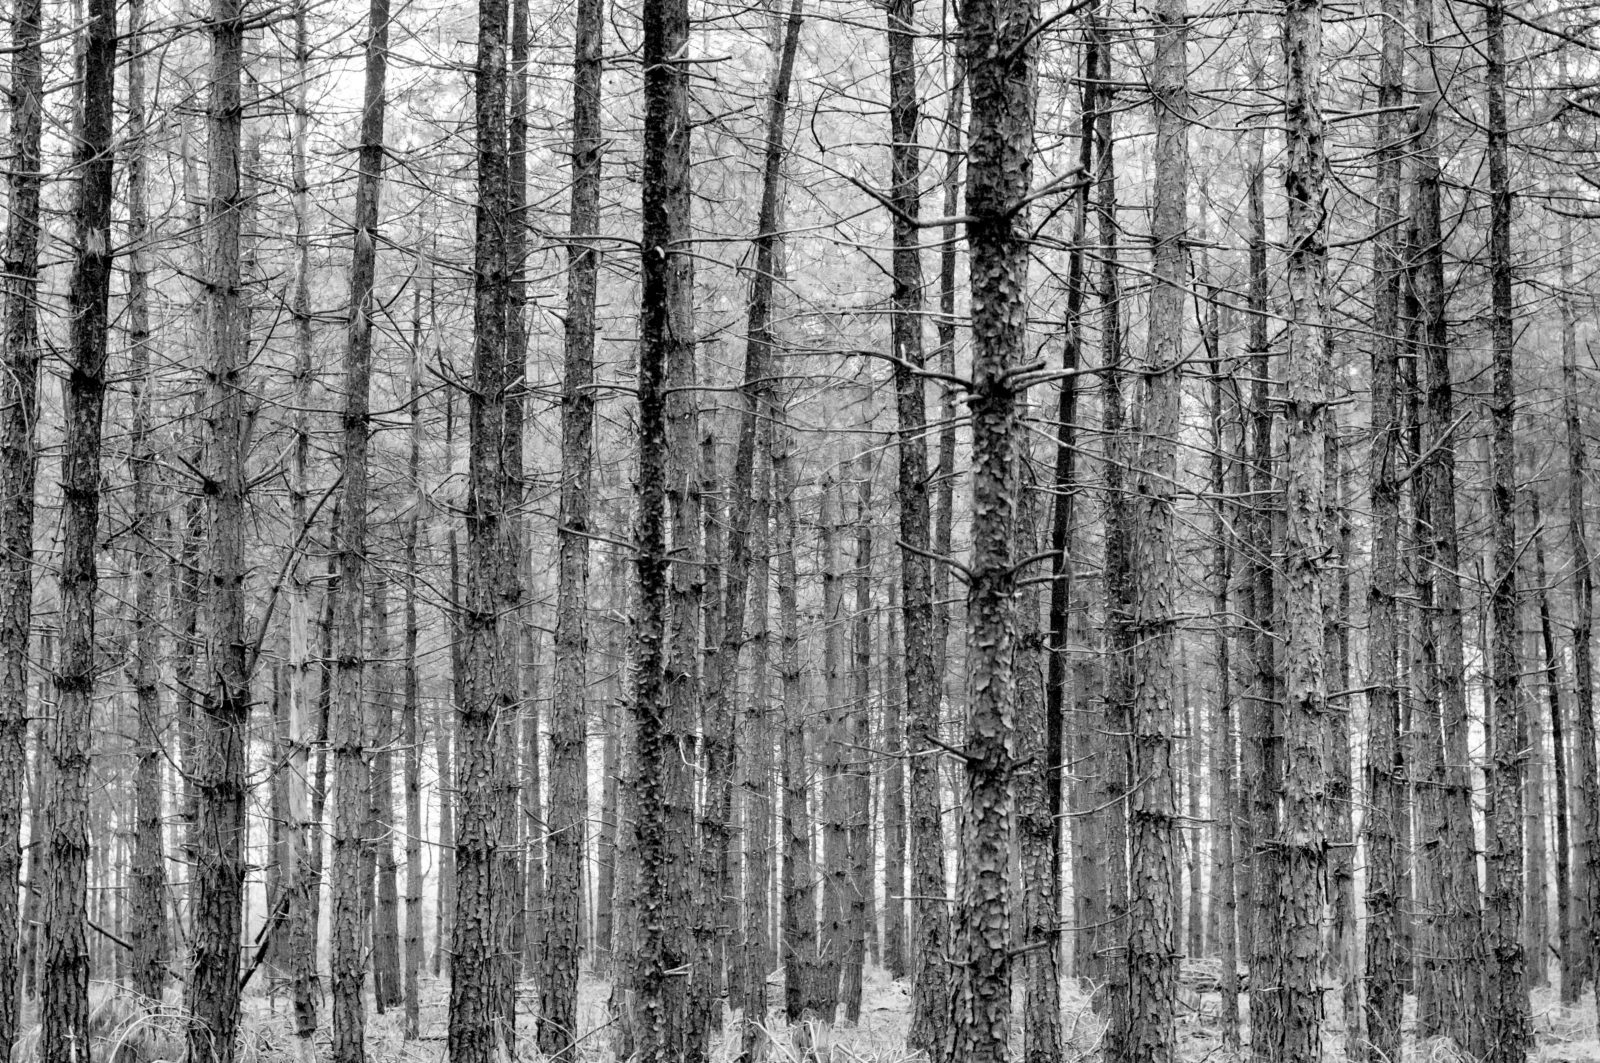 Pine forrest bare branches background